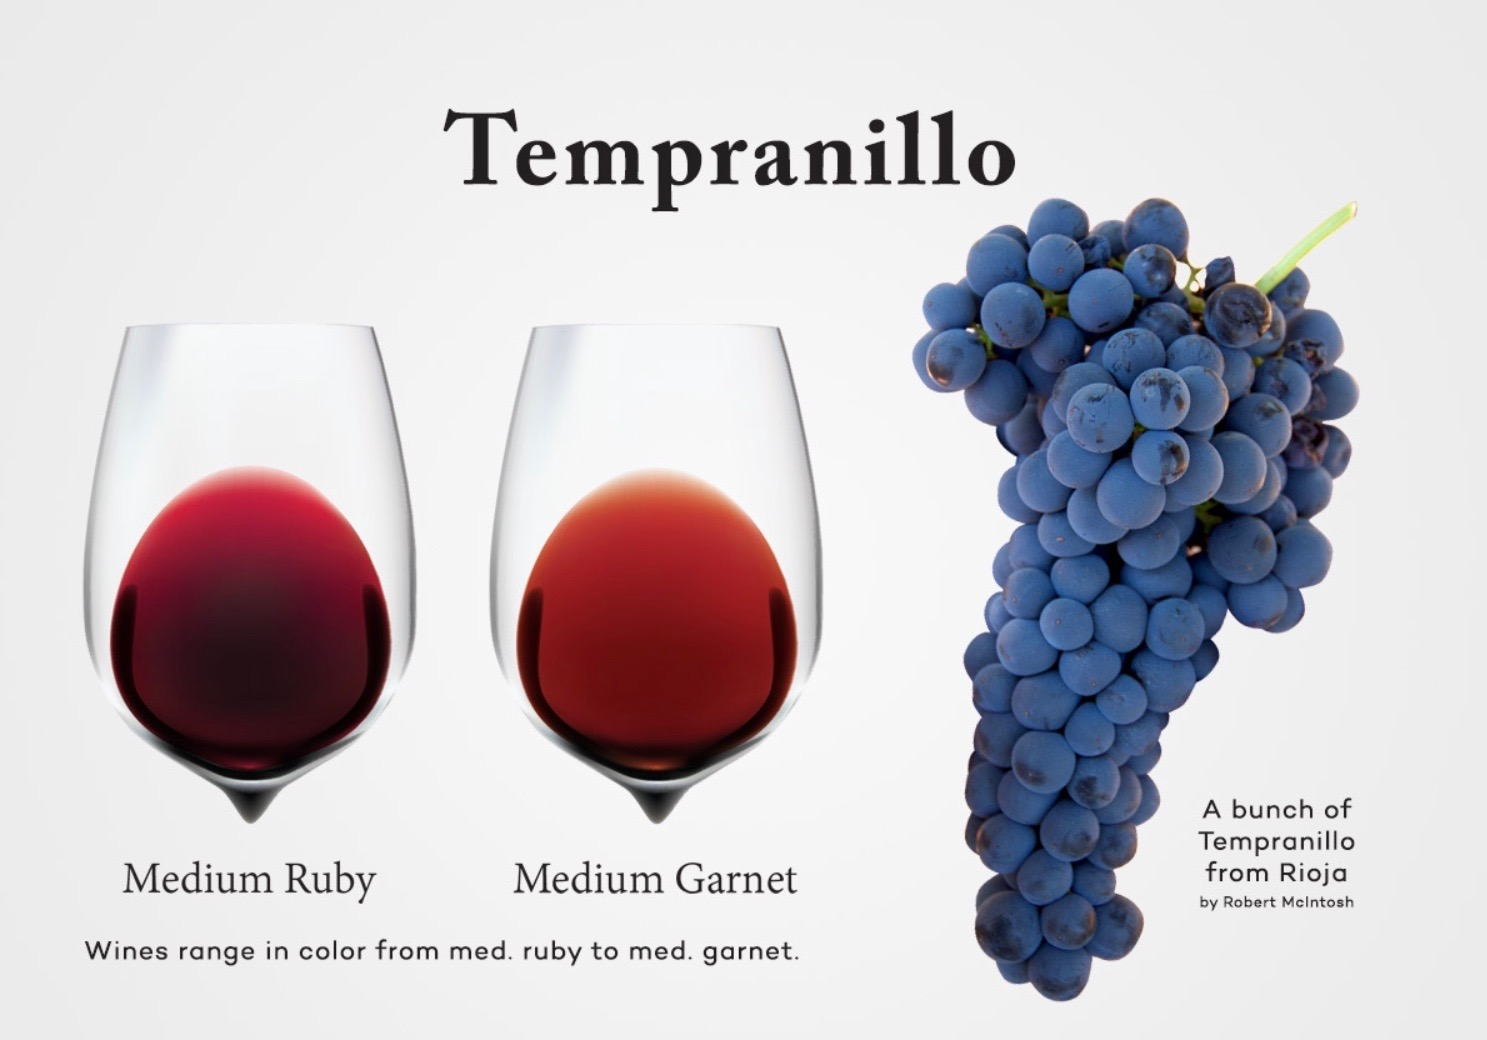 A bunch of Tempranillo grapes from Rioja